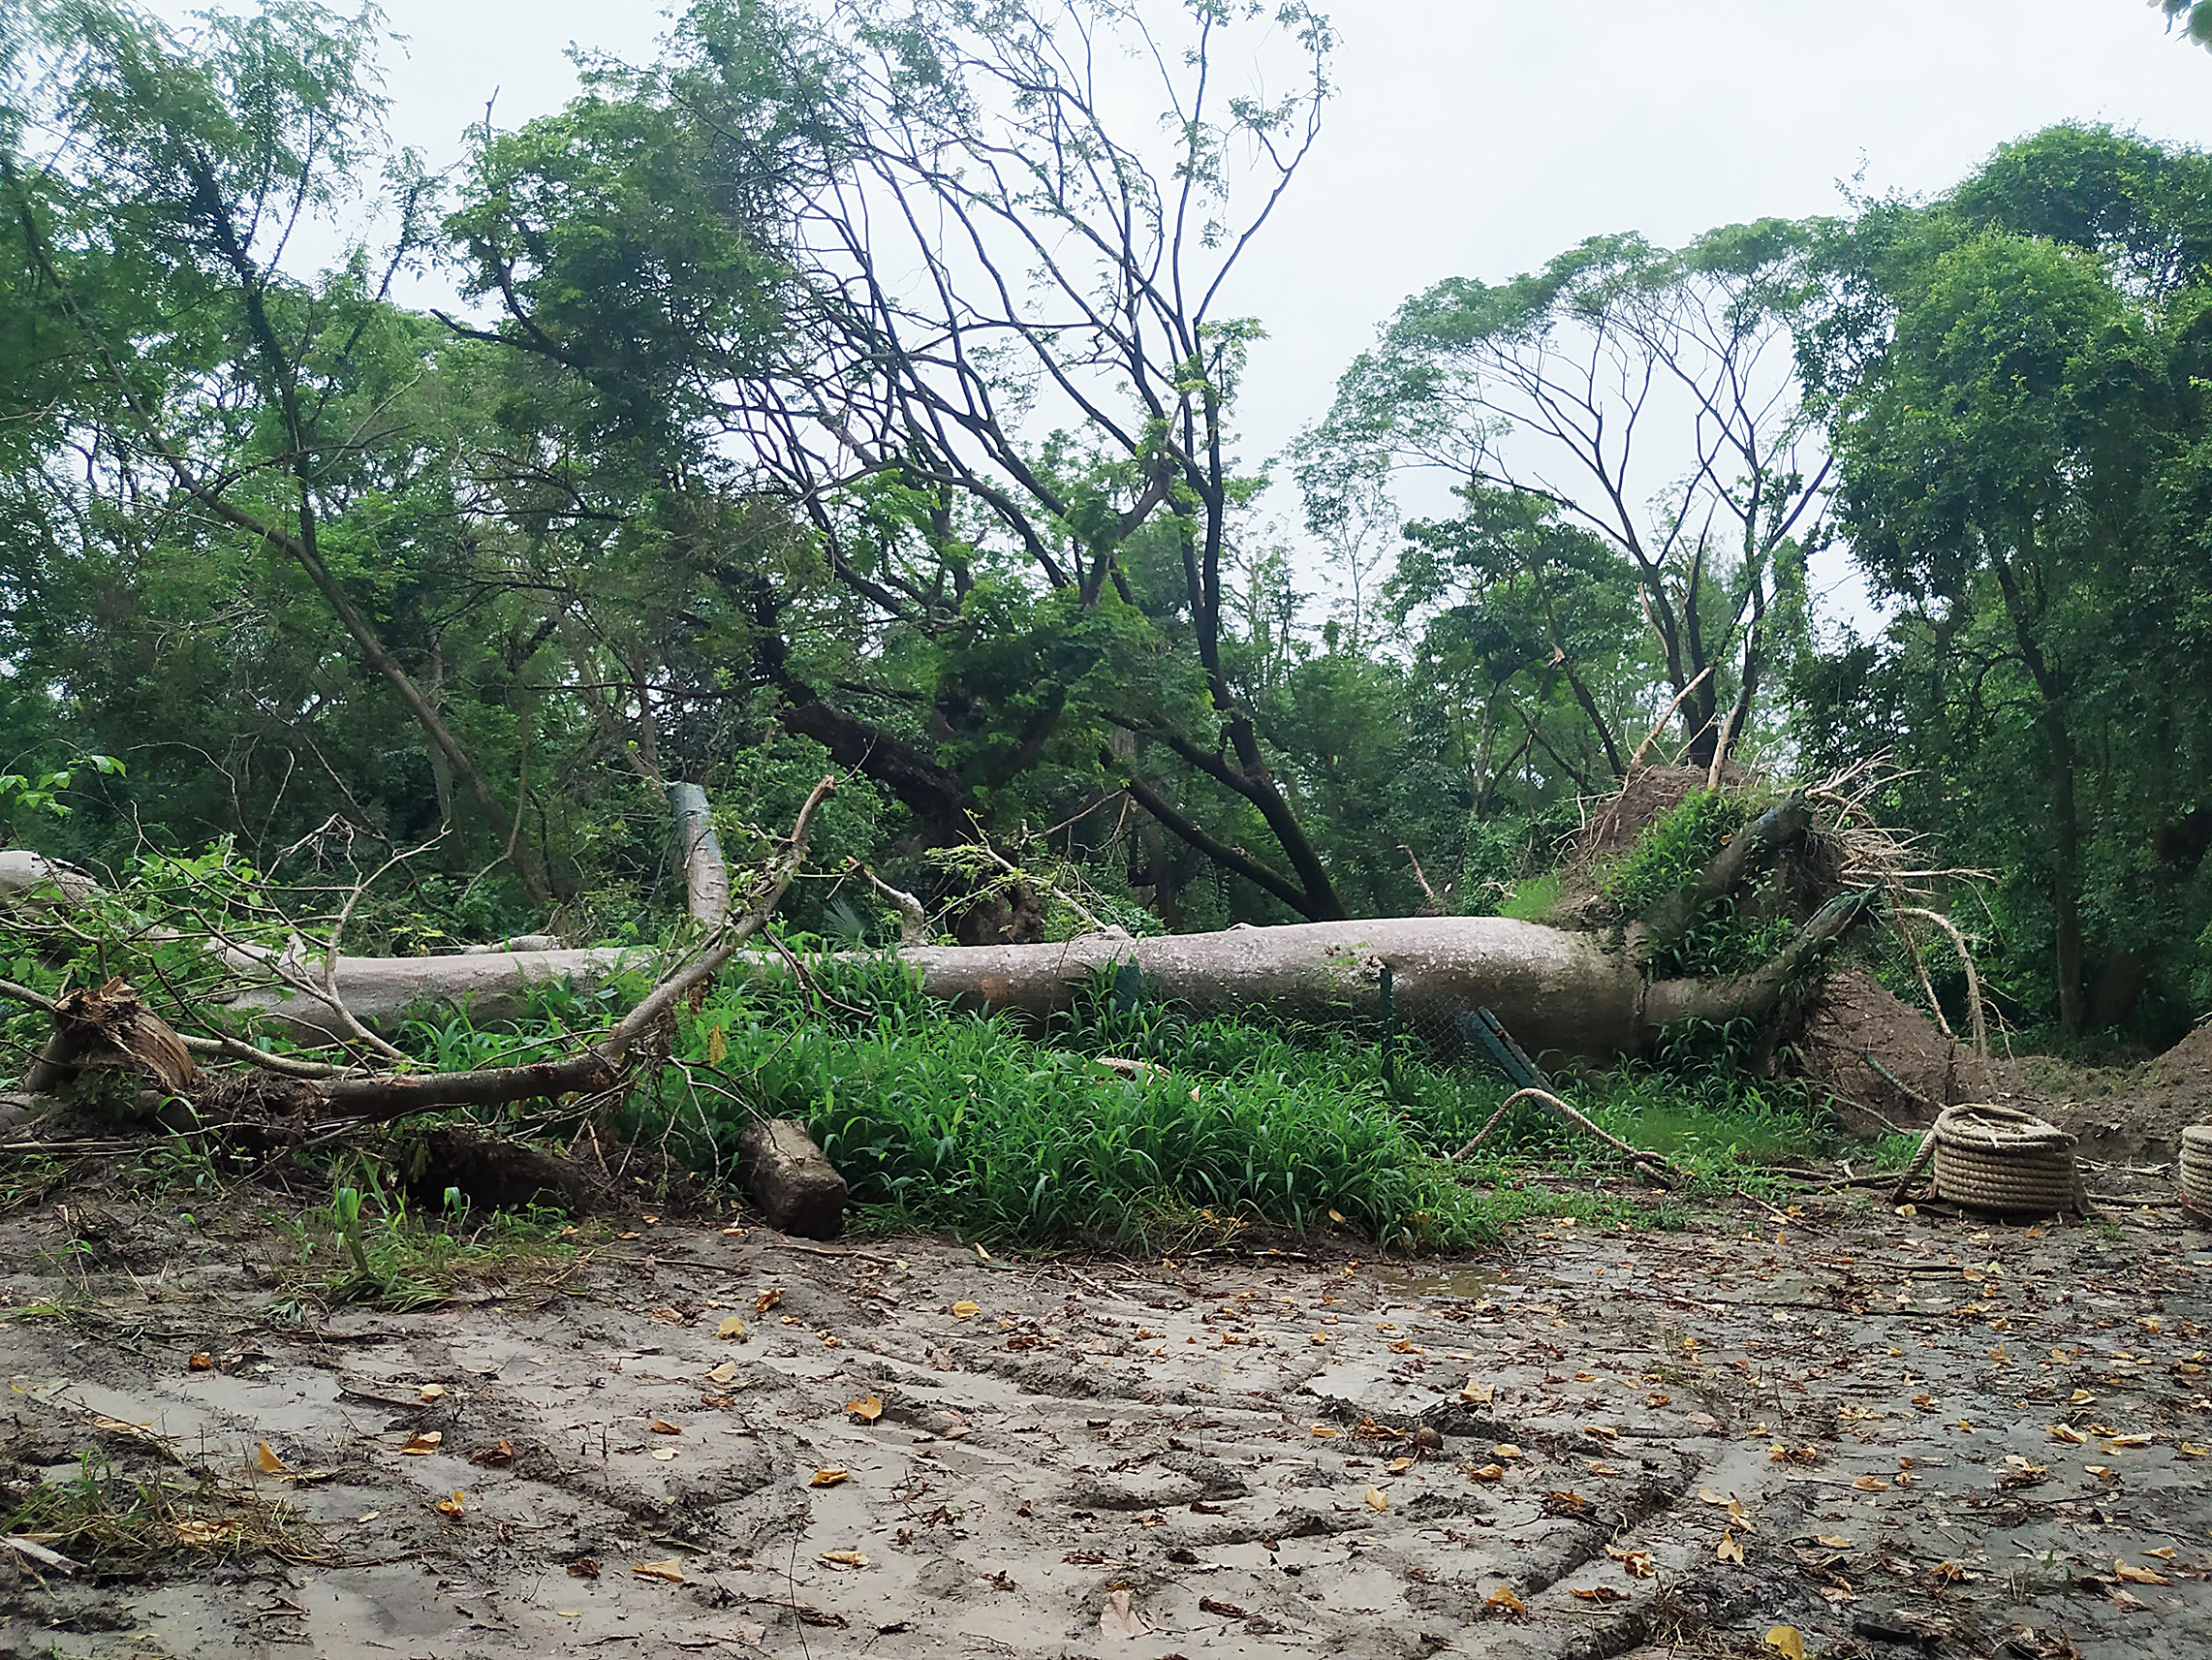 Efforts are on by garden officials to help the baobab stand again.